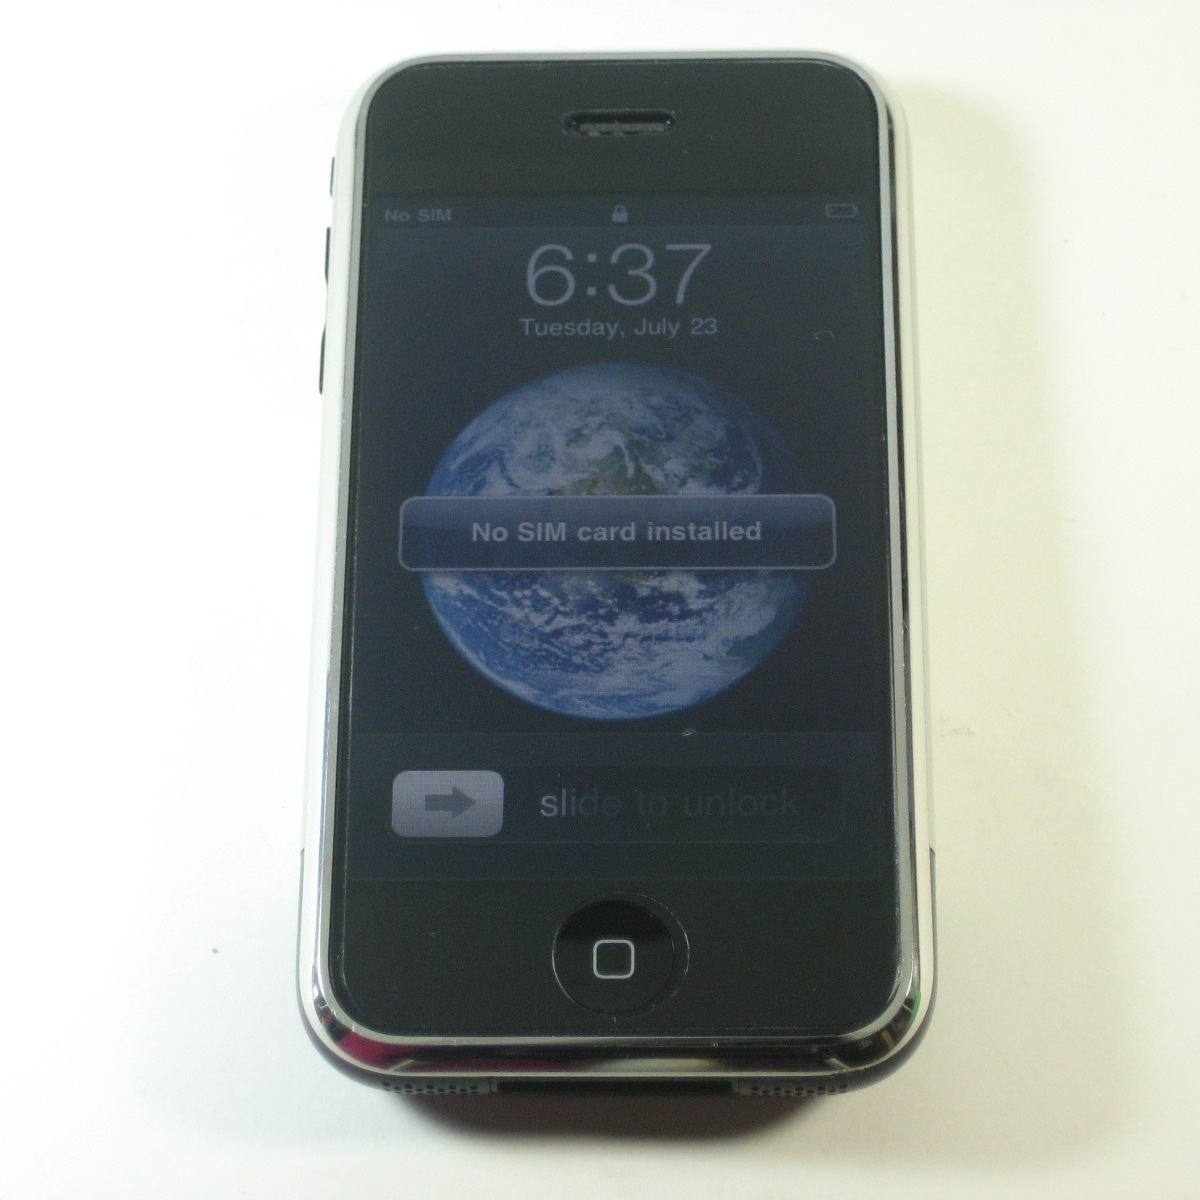 Apple iPhone 1st Generation 4GB Wi-Fi Touch Unlocked GSM ...